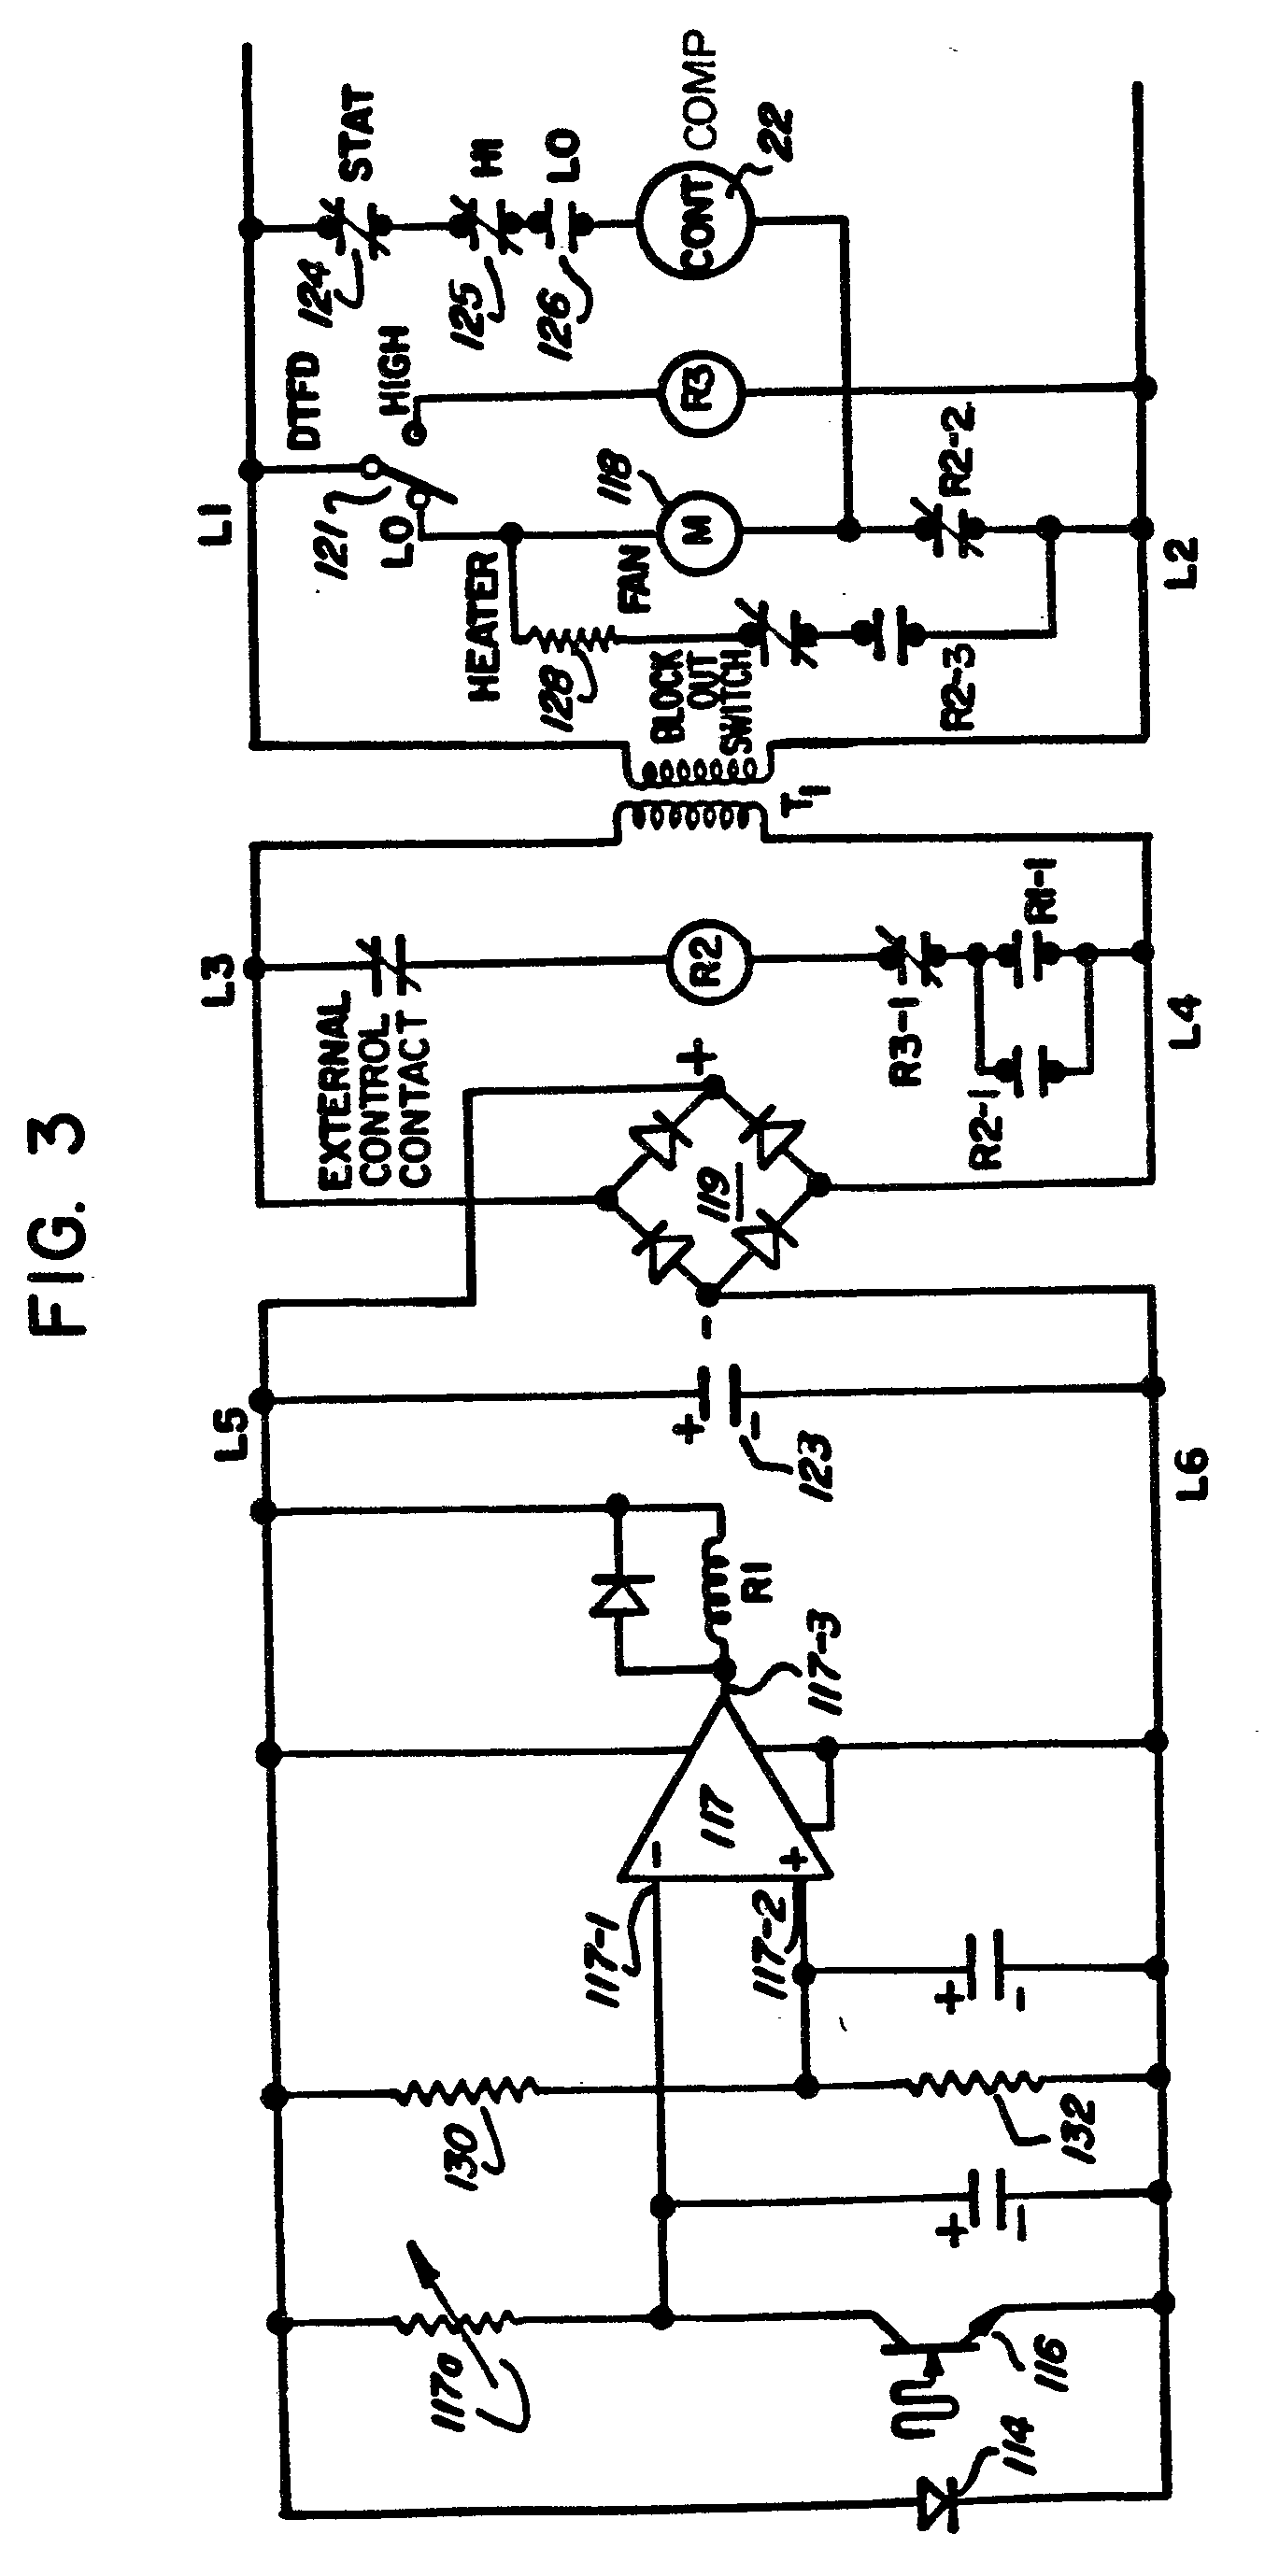 imgf0002 patent ep0066862a1 demand defrost system google patents defrost termination switch wiring diagram at fashall.co